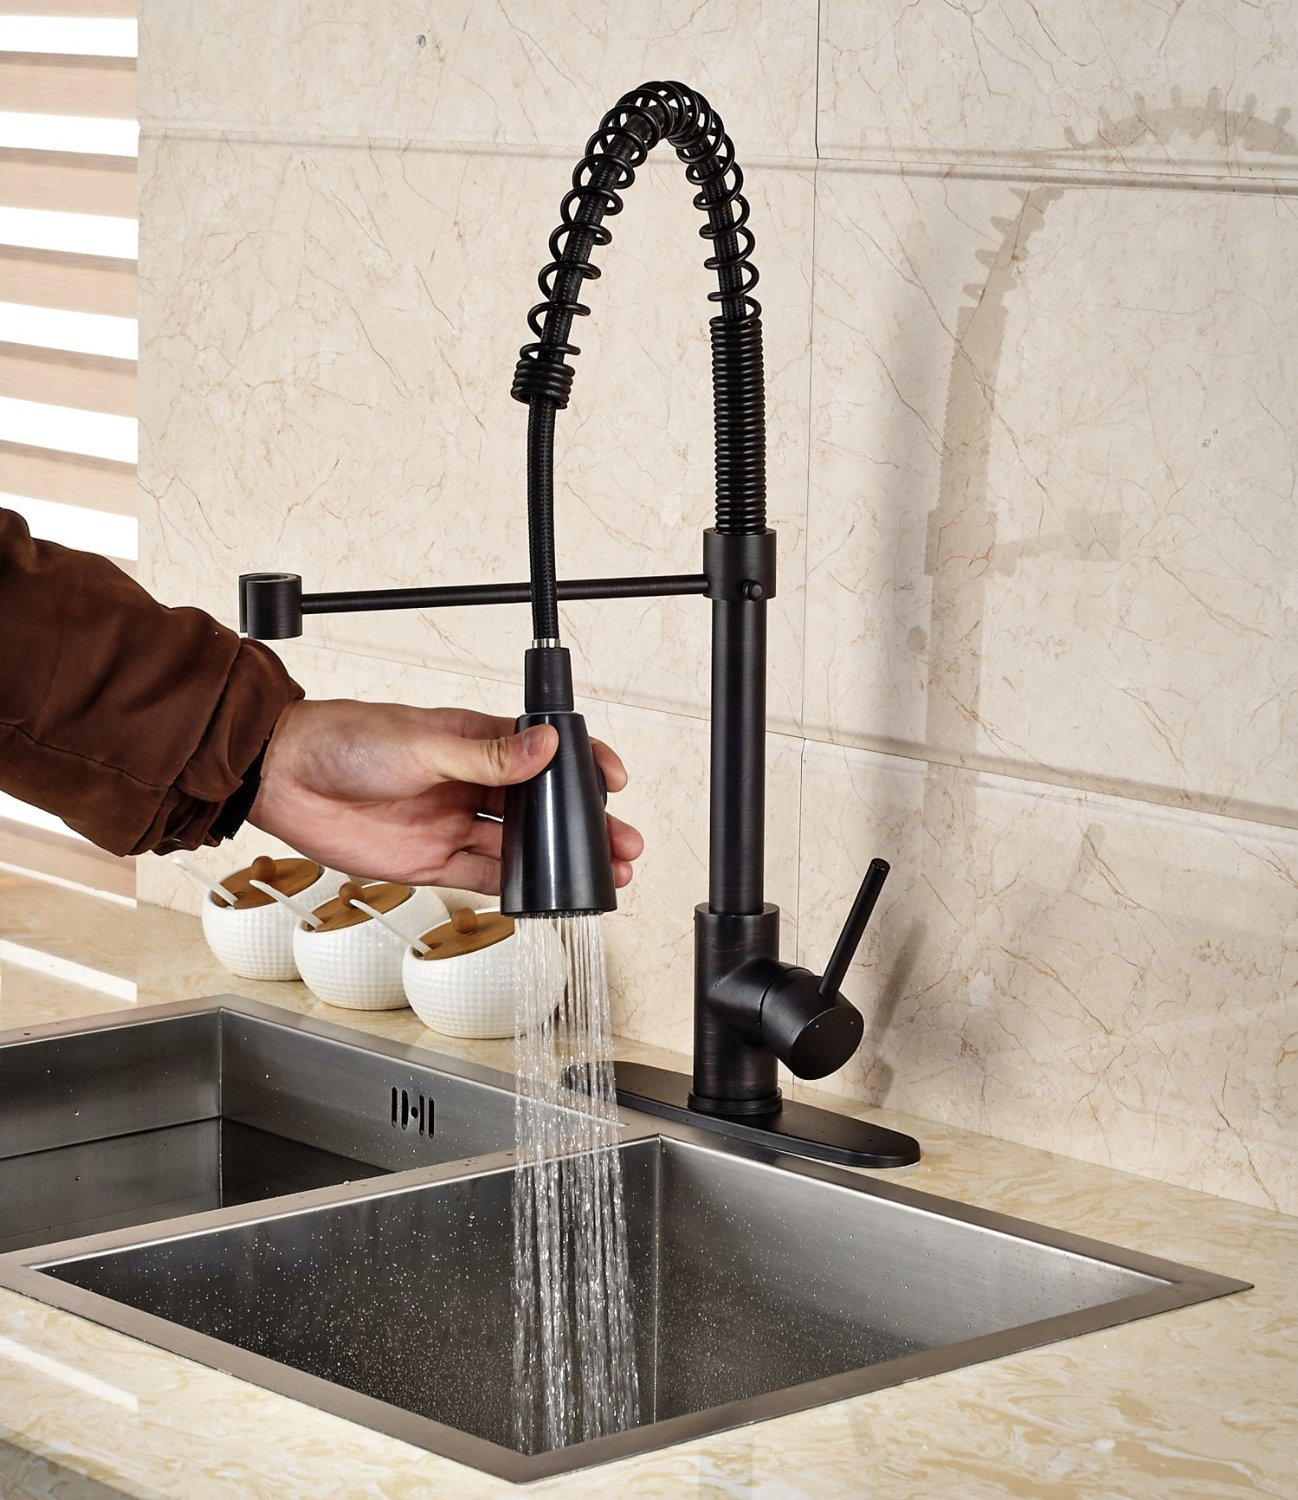 Tindouf Oil Rubbed Bronze Kitchen Sink Faucet Installation Instructions